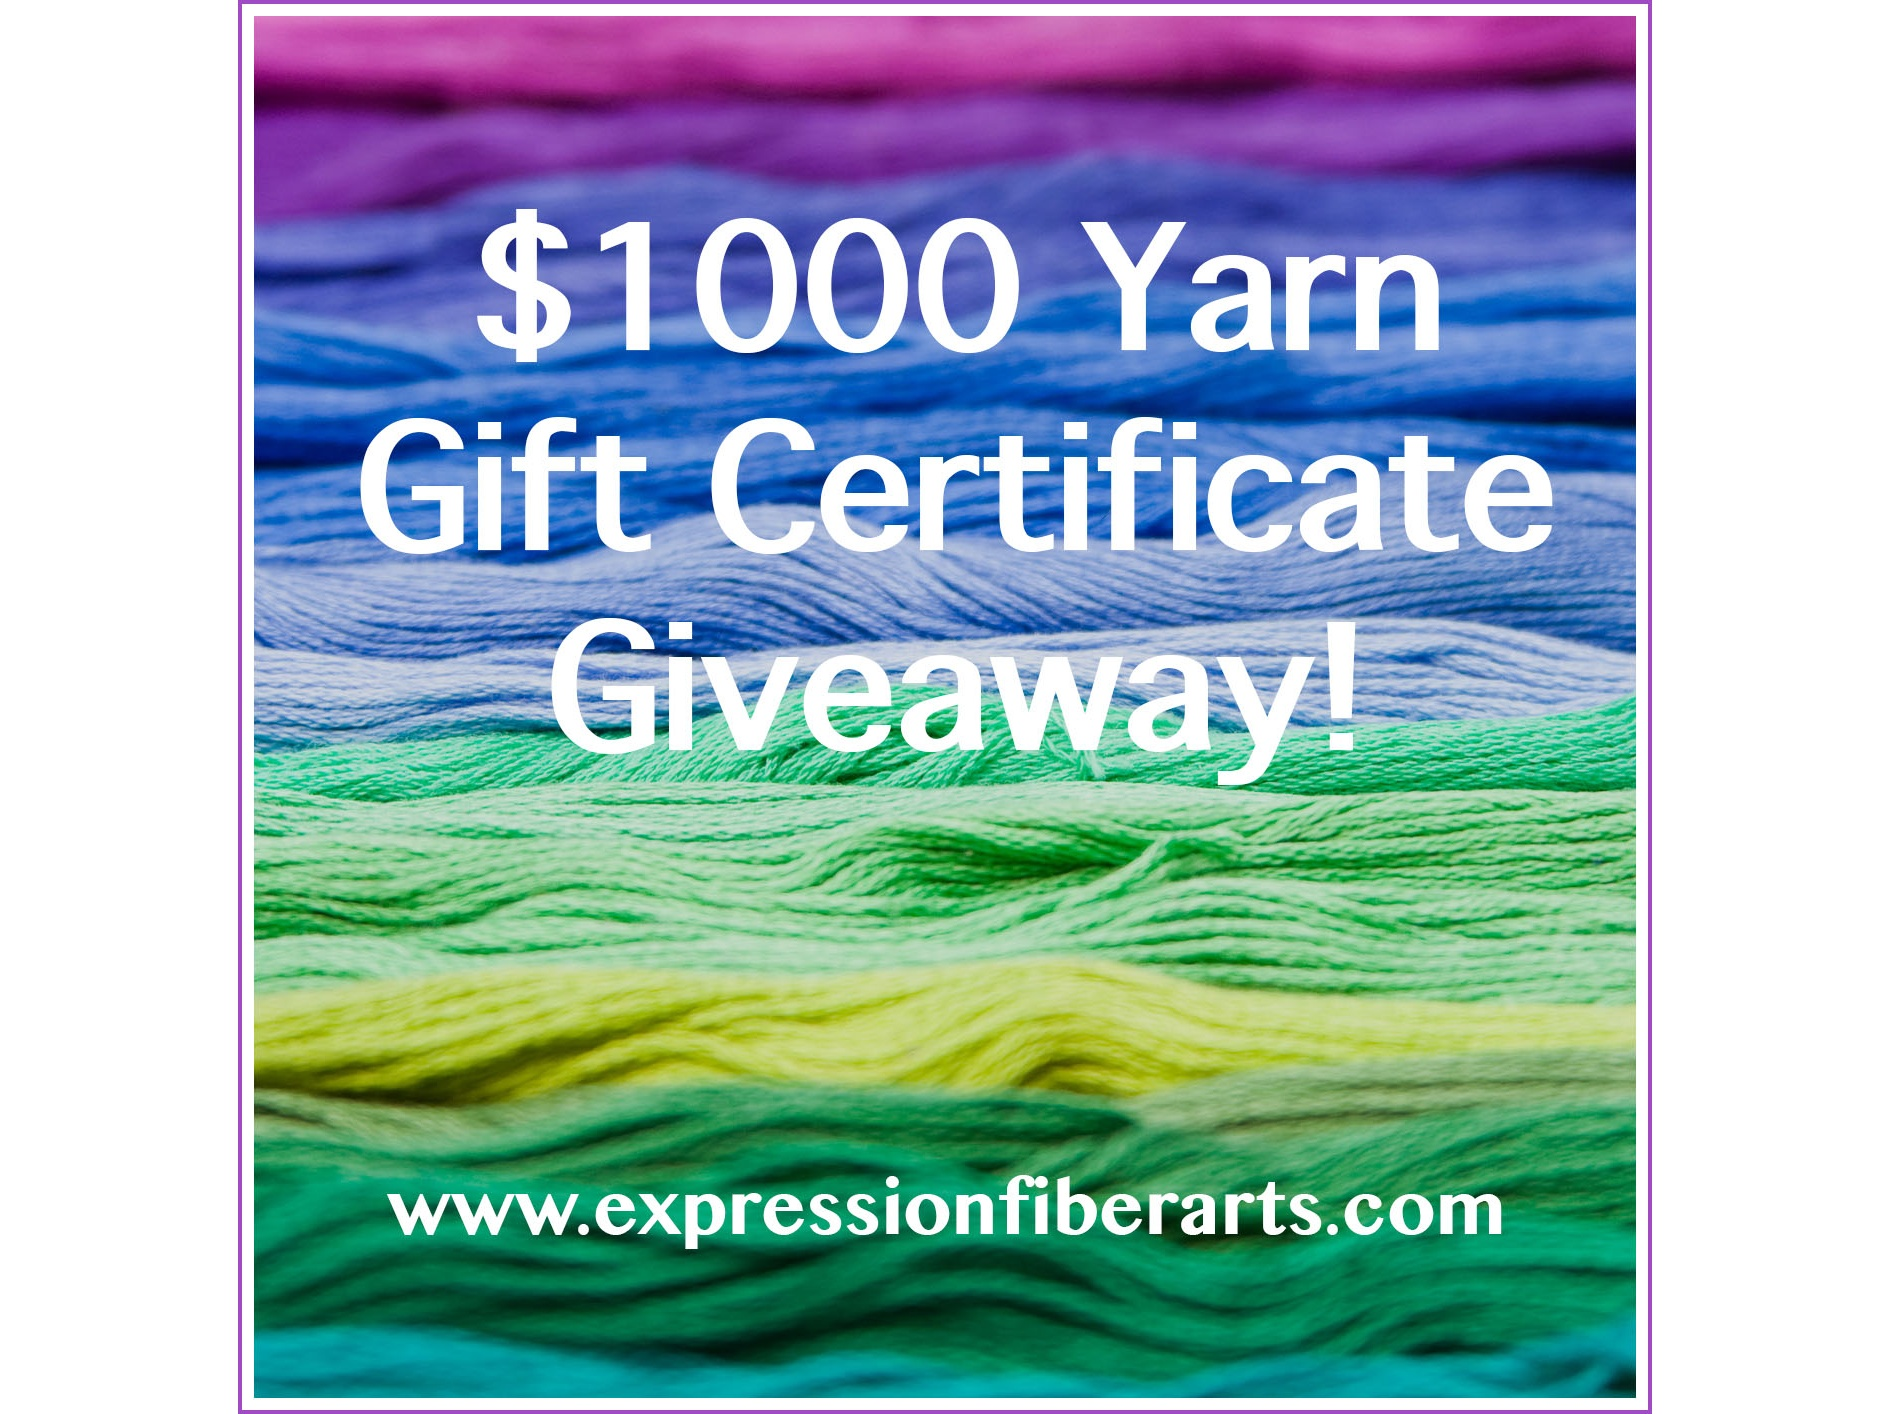 $1000 Yarn Gift Certificate Giveaway! - Expression Fiber